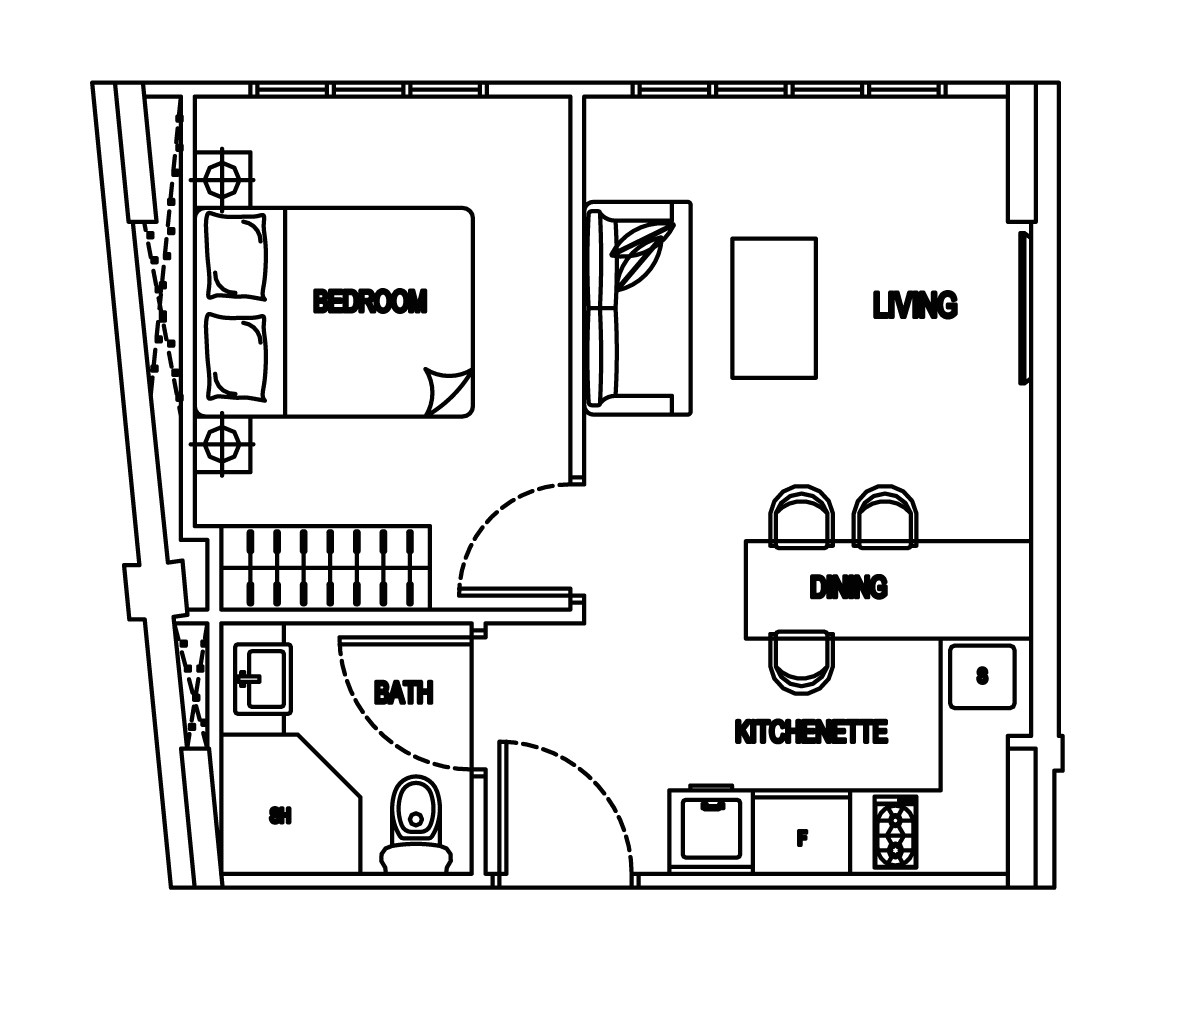 Floor Bachelor House Plans Adobe on bungalow house plans, santa fe house plans, adobe floor plans one story, santa fe adobe floor plans, hobbit house plans, roof cricket plans, dacha floor plans, single adobe house plans, beauclerc bay apartments floor plans, cross creek apartments floor plans, pueblo style house plans, traditional adobe house plans, super adobe house plans, adobe homes, adobe tile flooring, adobe southwestern house plans, adobe house plans with center courtyard, woodlands floor plans, french country chateau floor plans, modern adobe house plans,